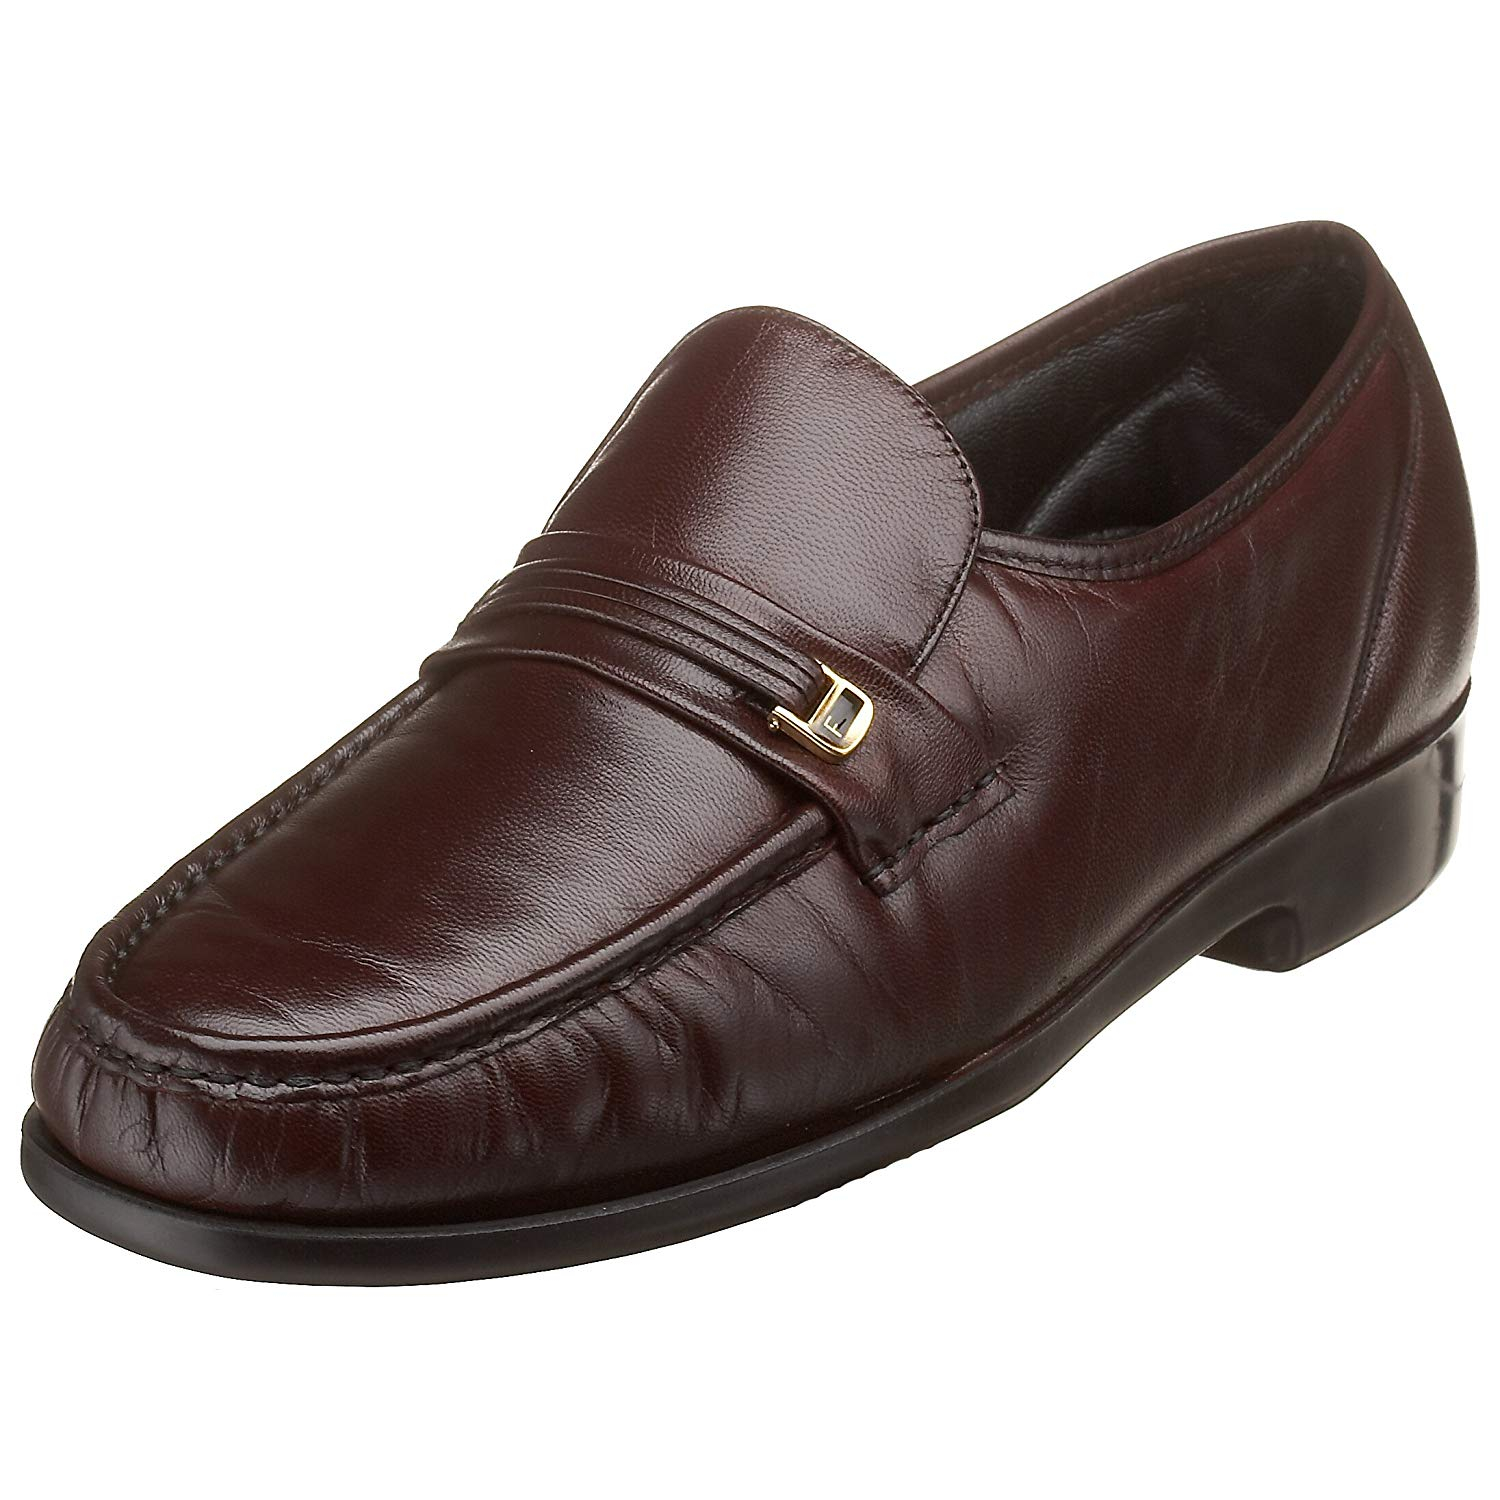 ba14203b72a Details about Florsheim Mens Riva Leather Round Toe Penny Loafer